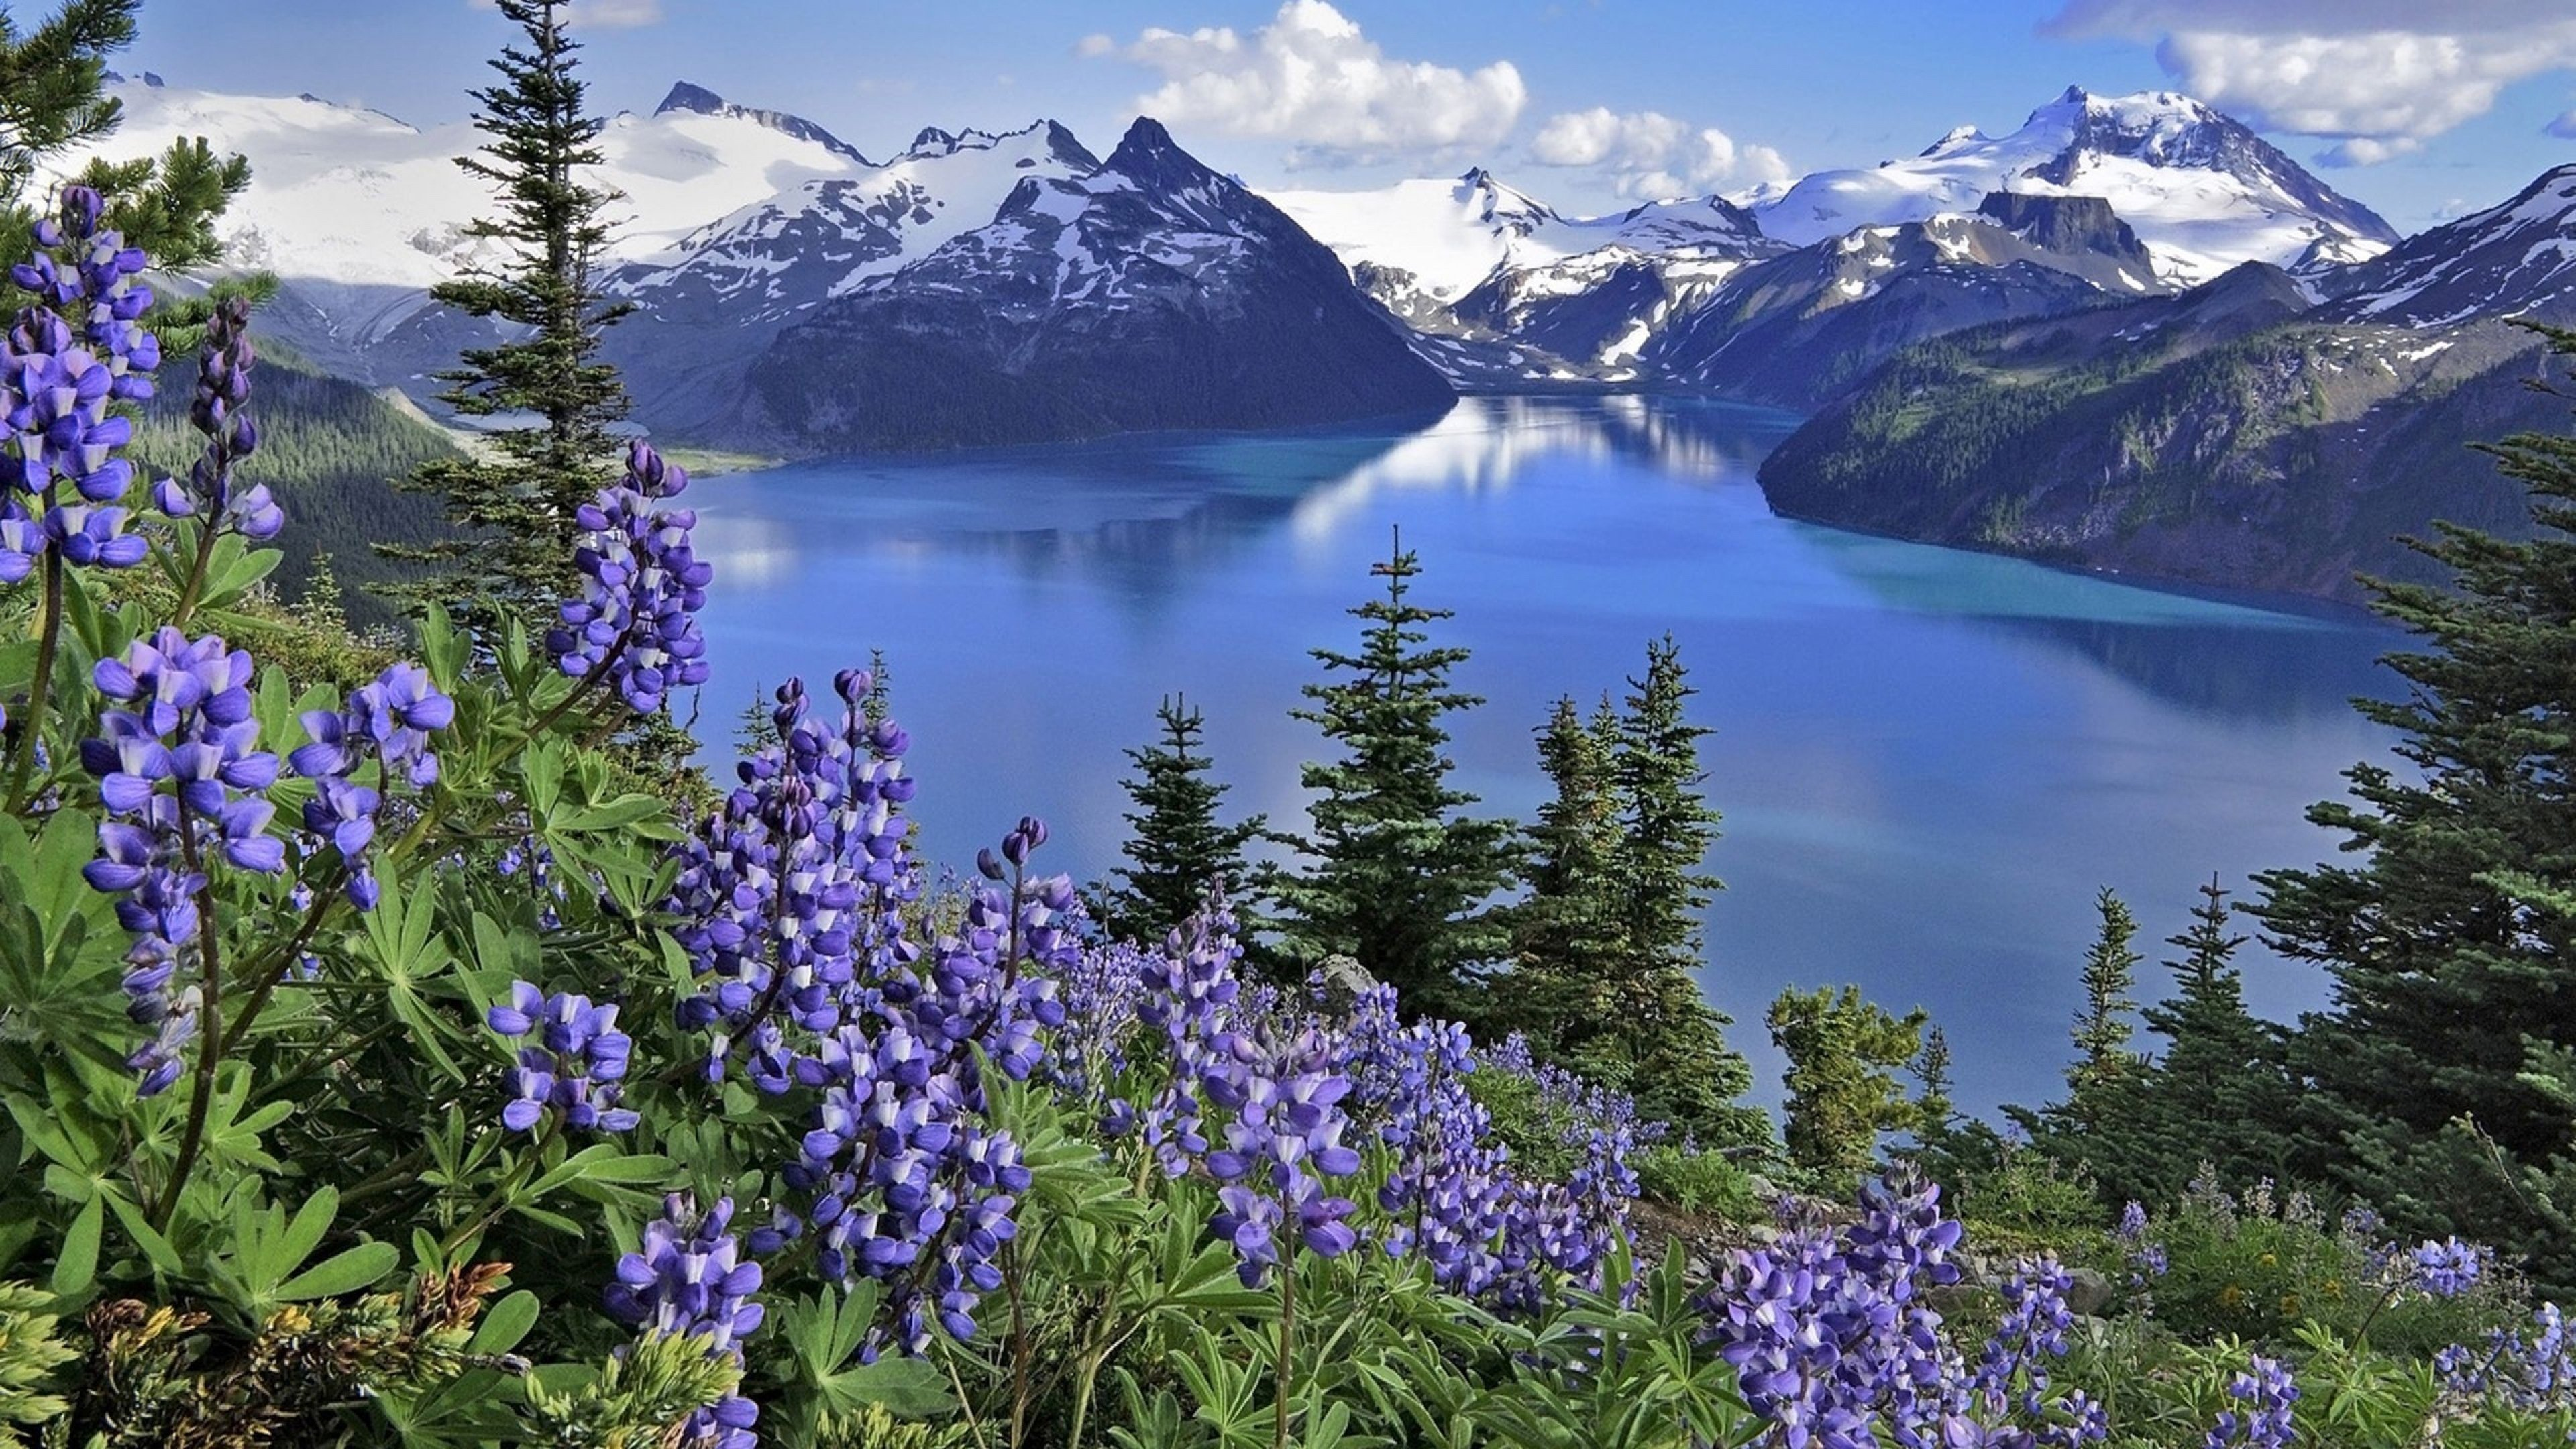 Wallpaper 3840x2160 Flowers Mountains Lake 4K Ultra HD HD Background 3840x2160